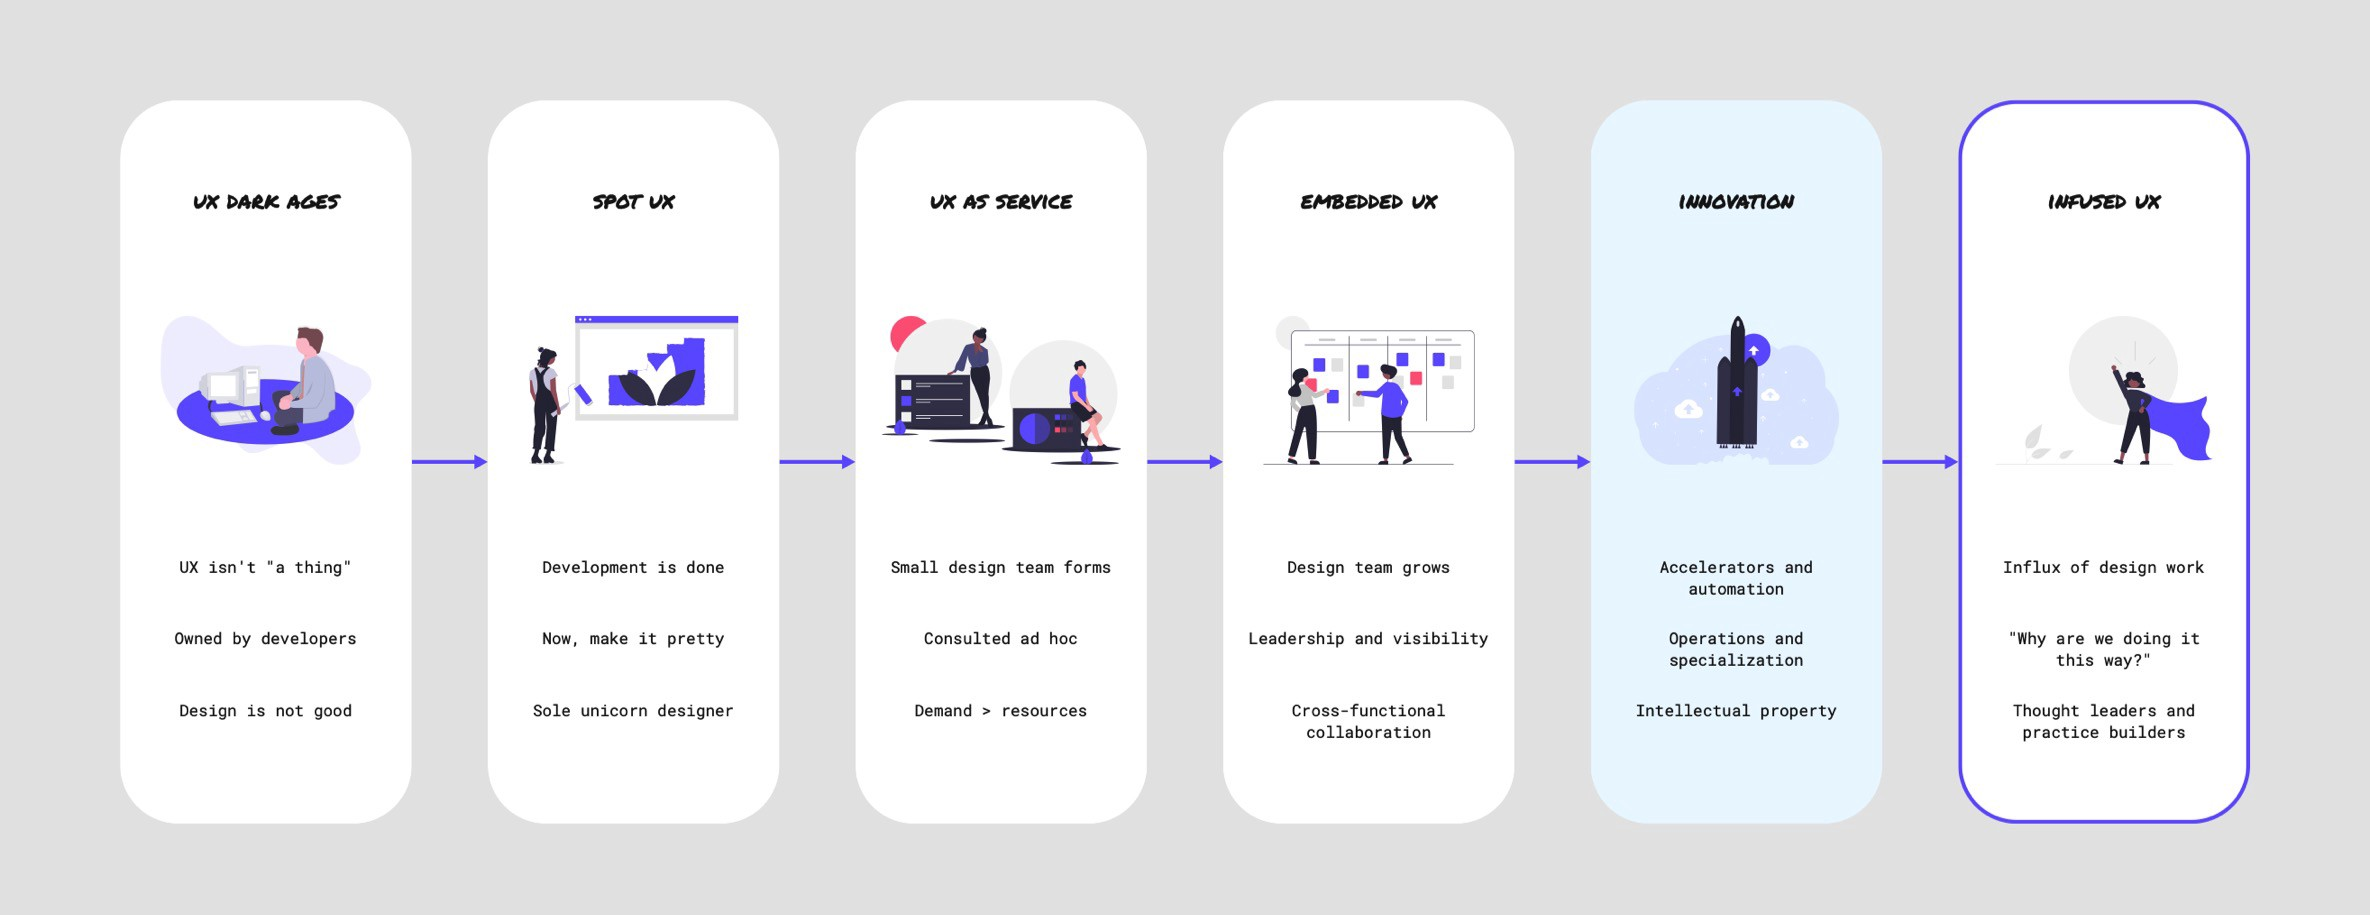 Infused UX is now achievable through the introduction of Innovation as a catalyst and vehicle.